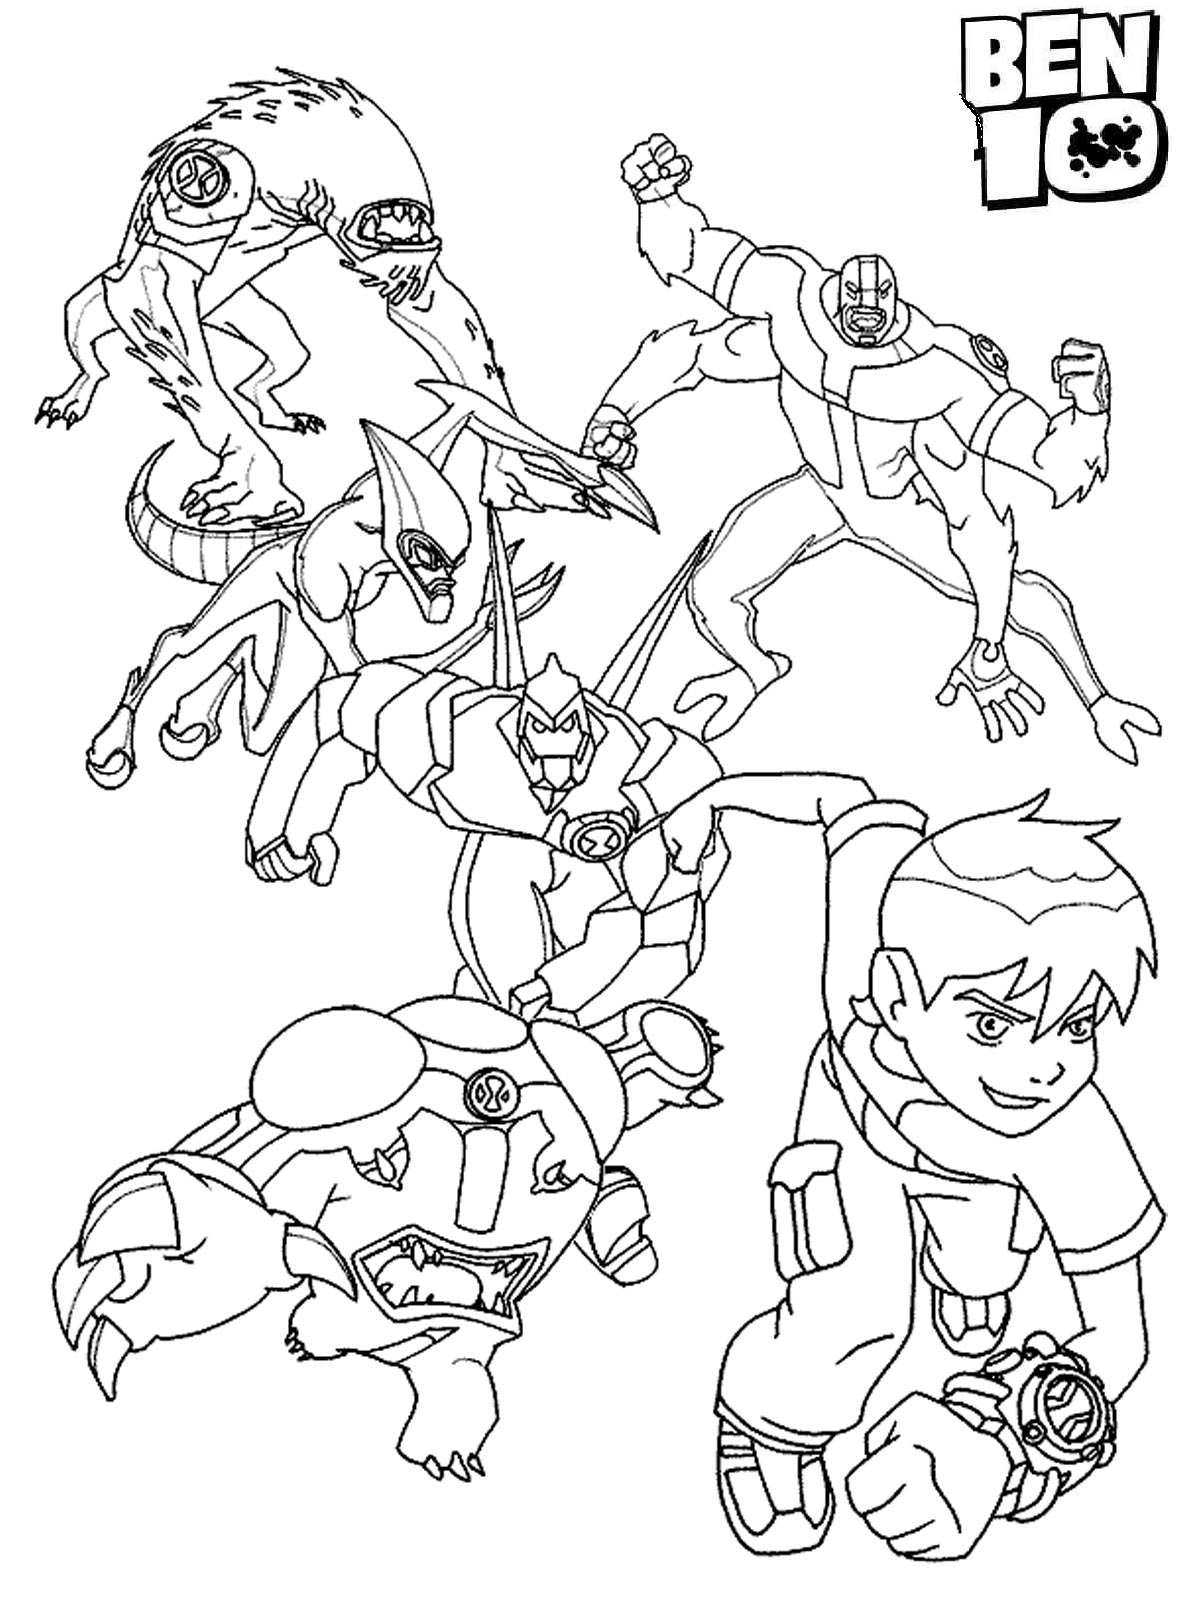 ben 10 coloring page ben 10 coloring pages free coloring pages printables for 10 coloring page ben